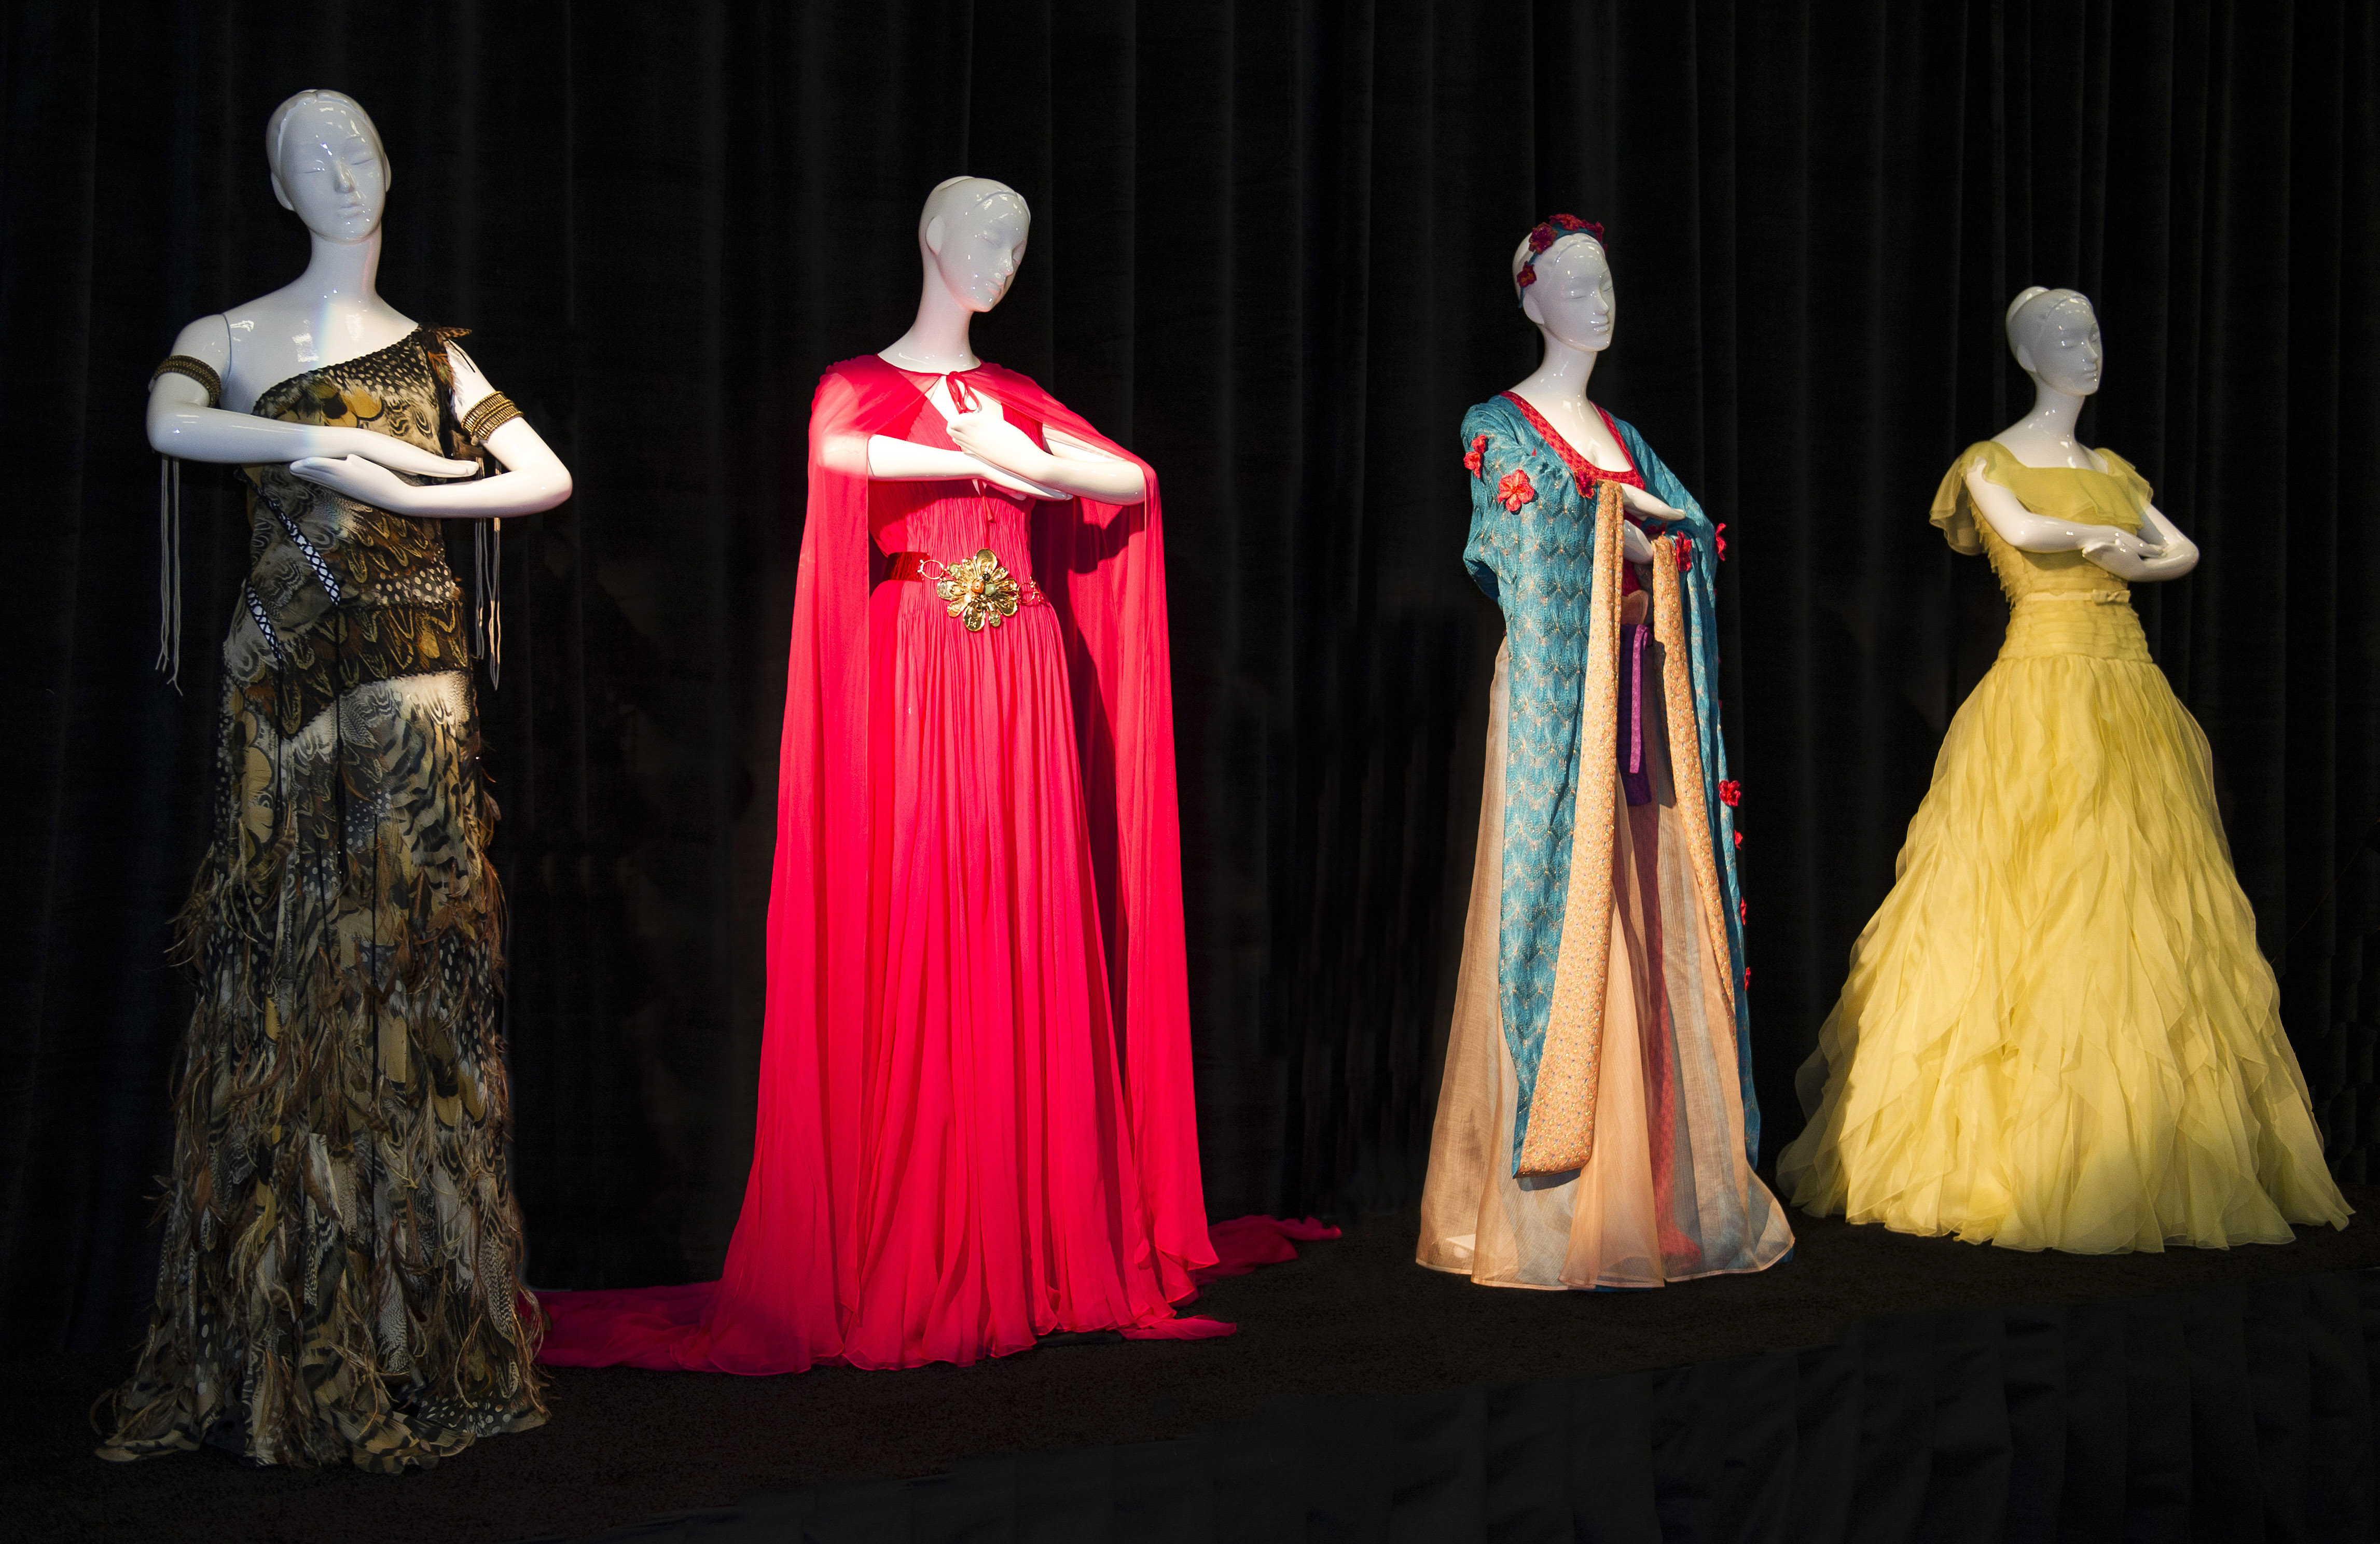 Fashion designer disney princess dress auction at harrods Replica designer clothes uk